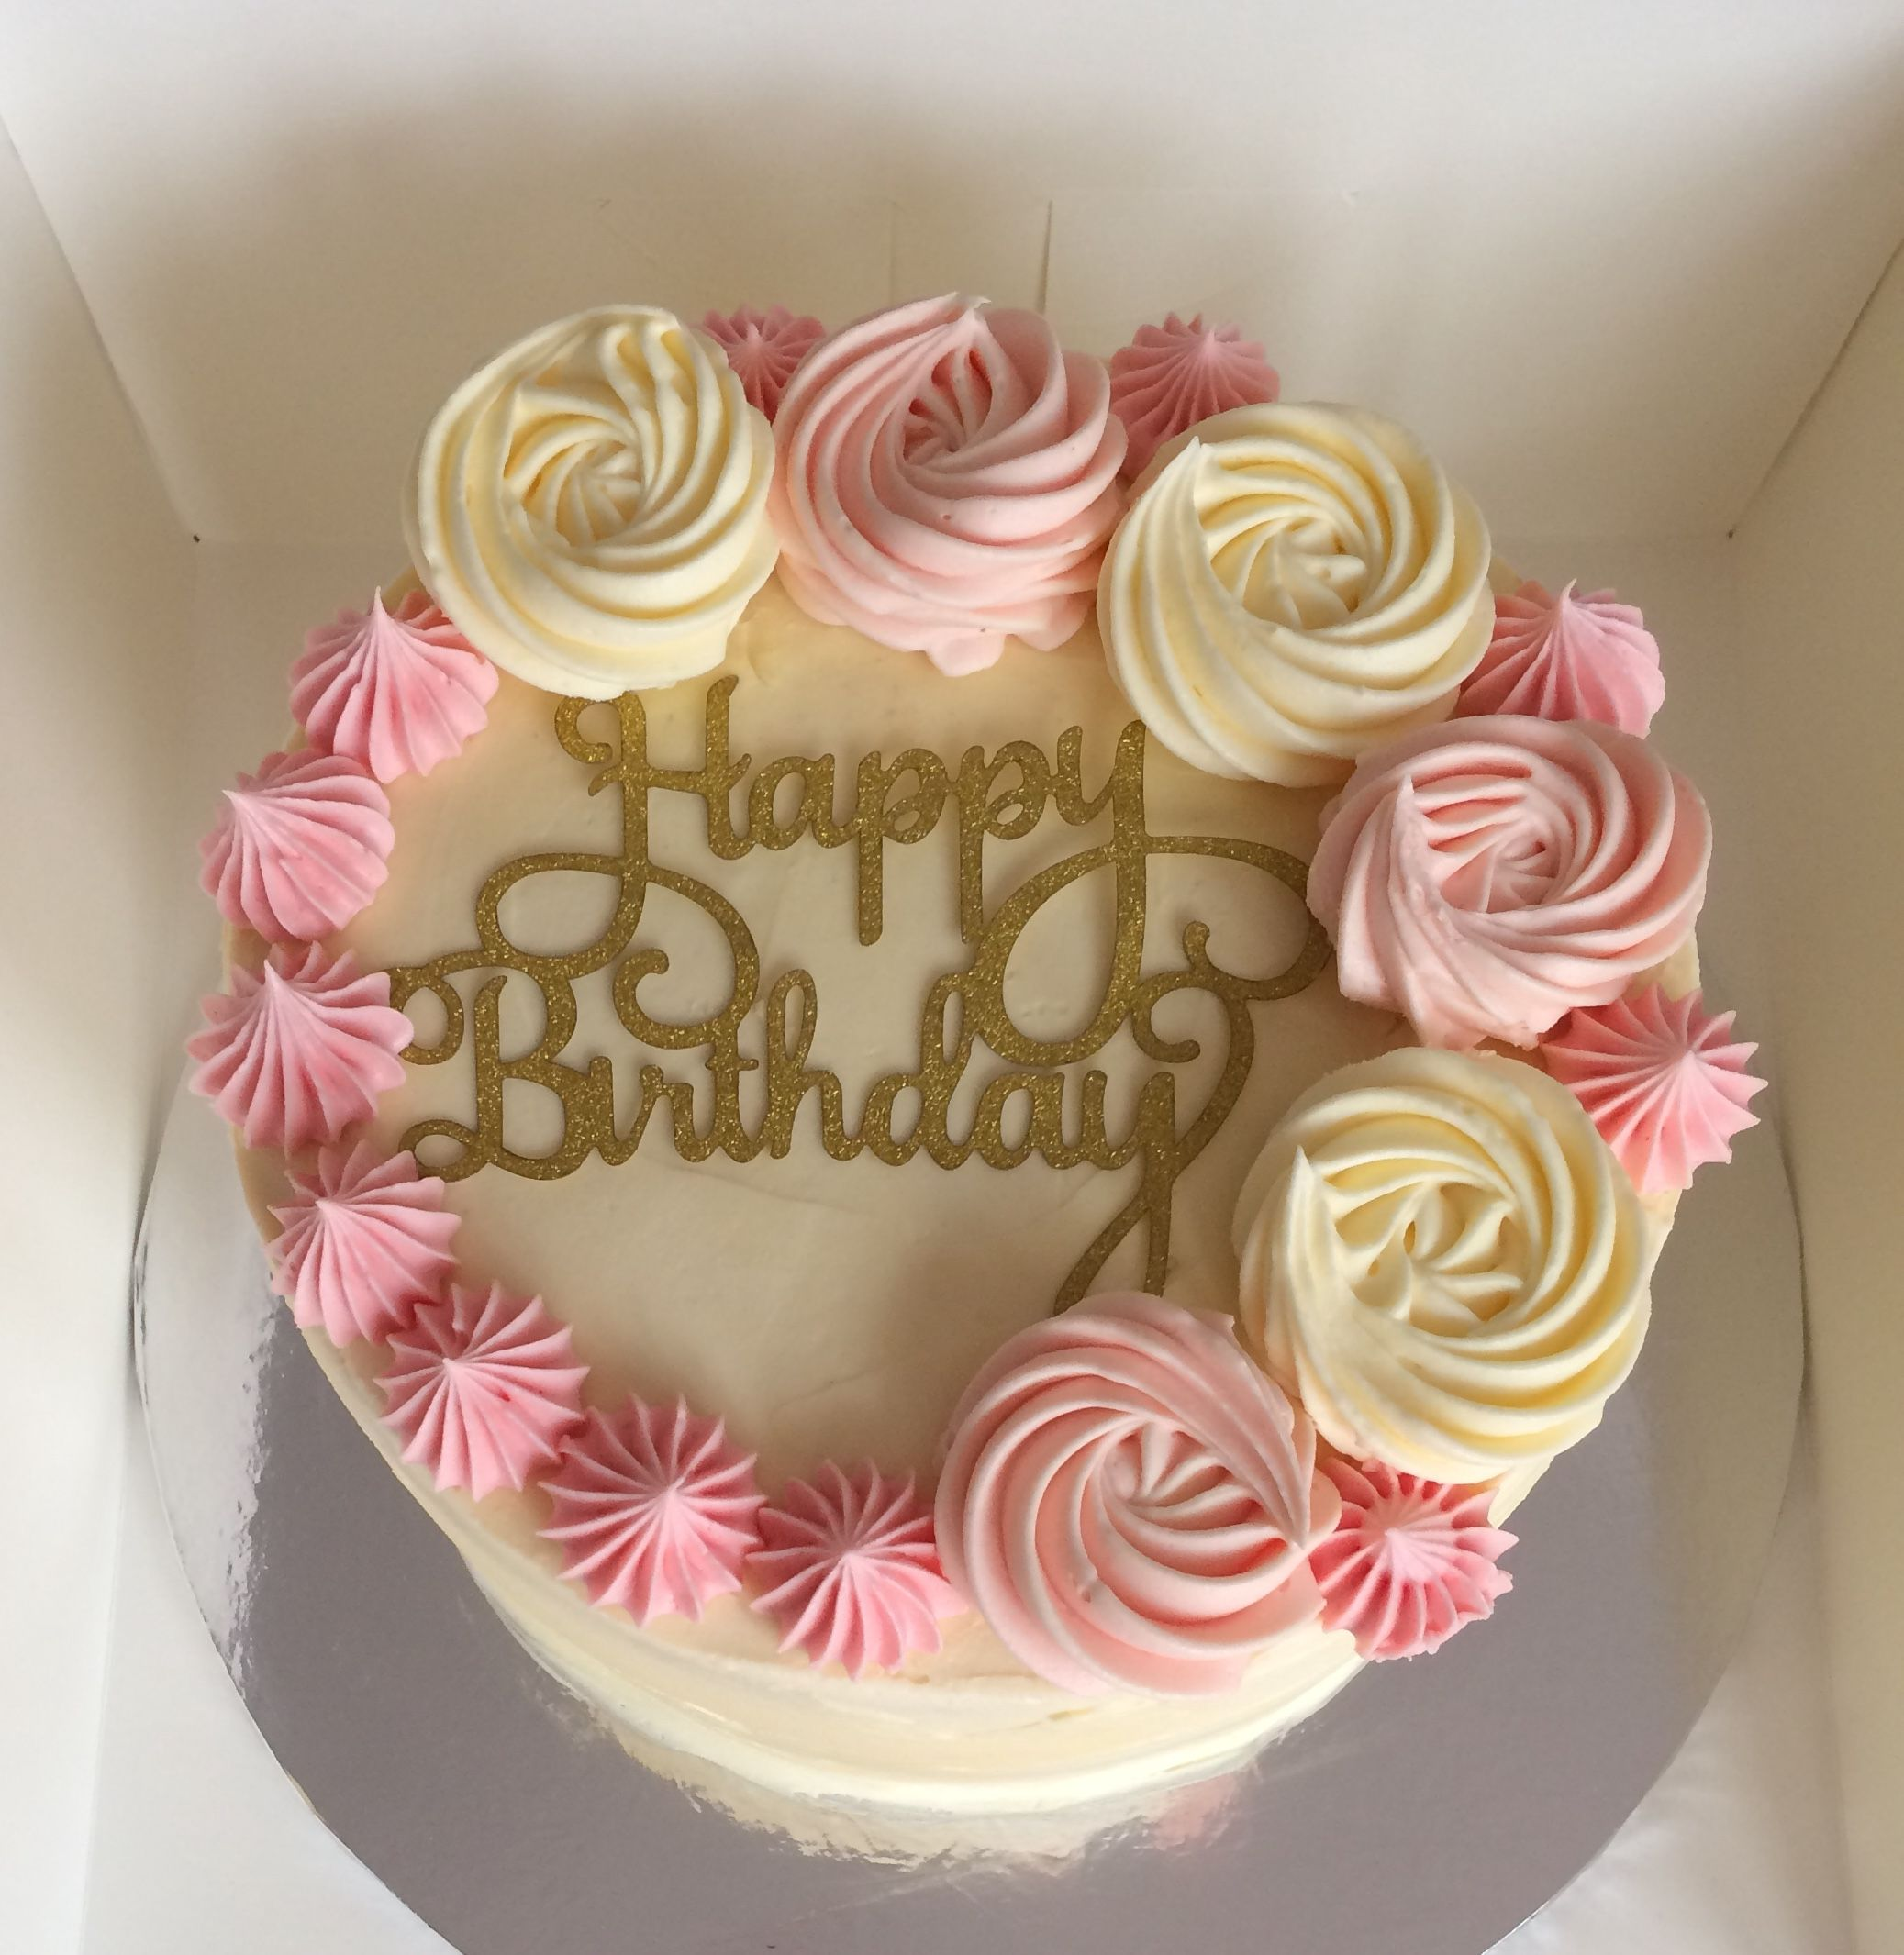 Swirls Birthday Cake Buttercream Birthday Cake Simple Cake Designs Birthday Cake Decorating